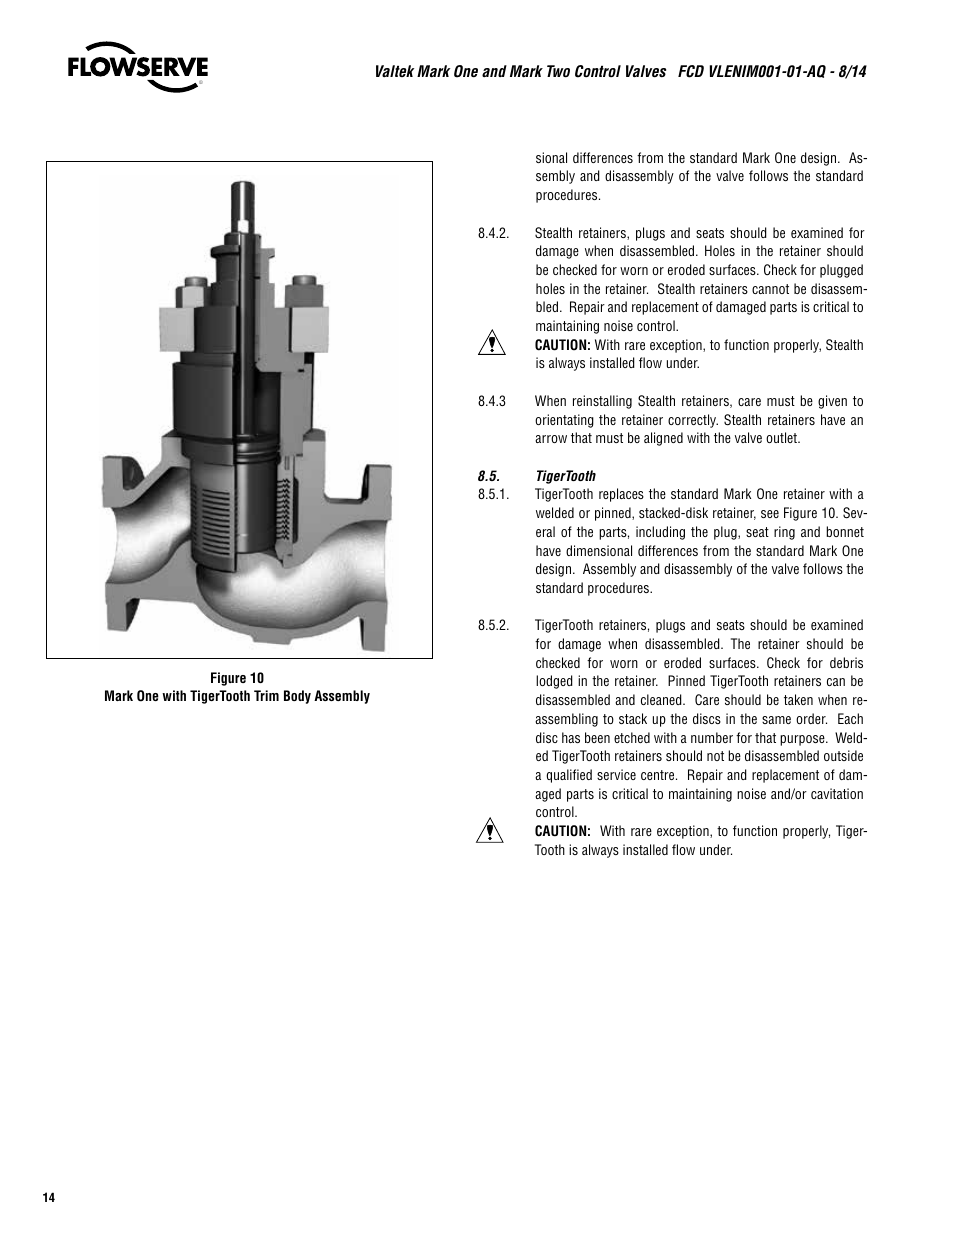 Flowserve Valtek Mark One and Mark Two Control Valves User Manual | Page 14  / 16